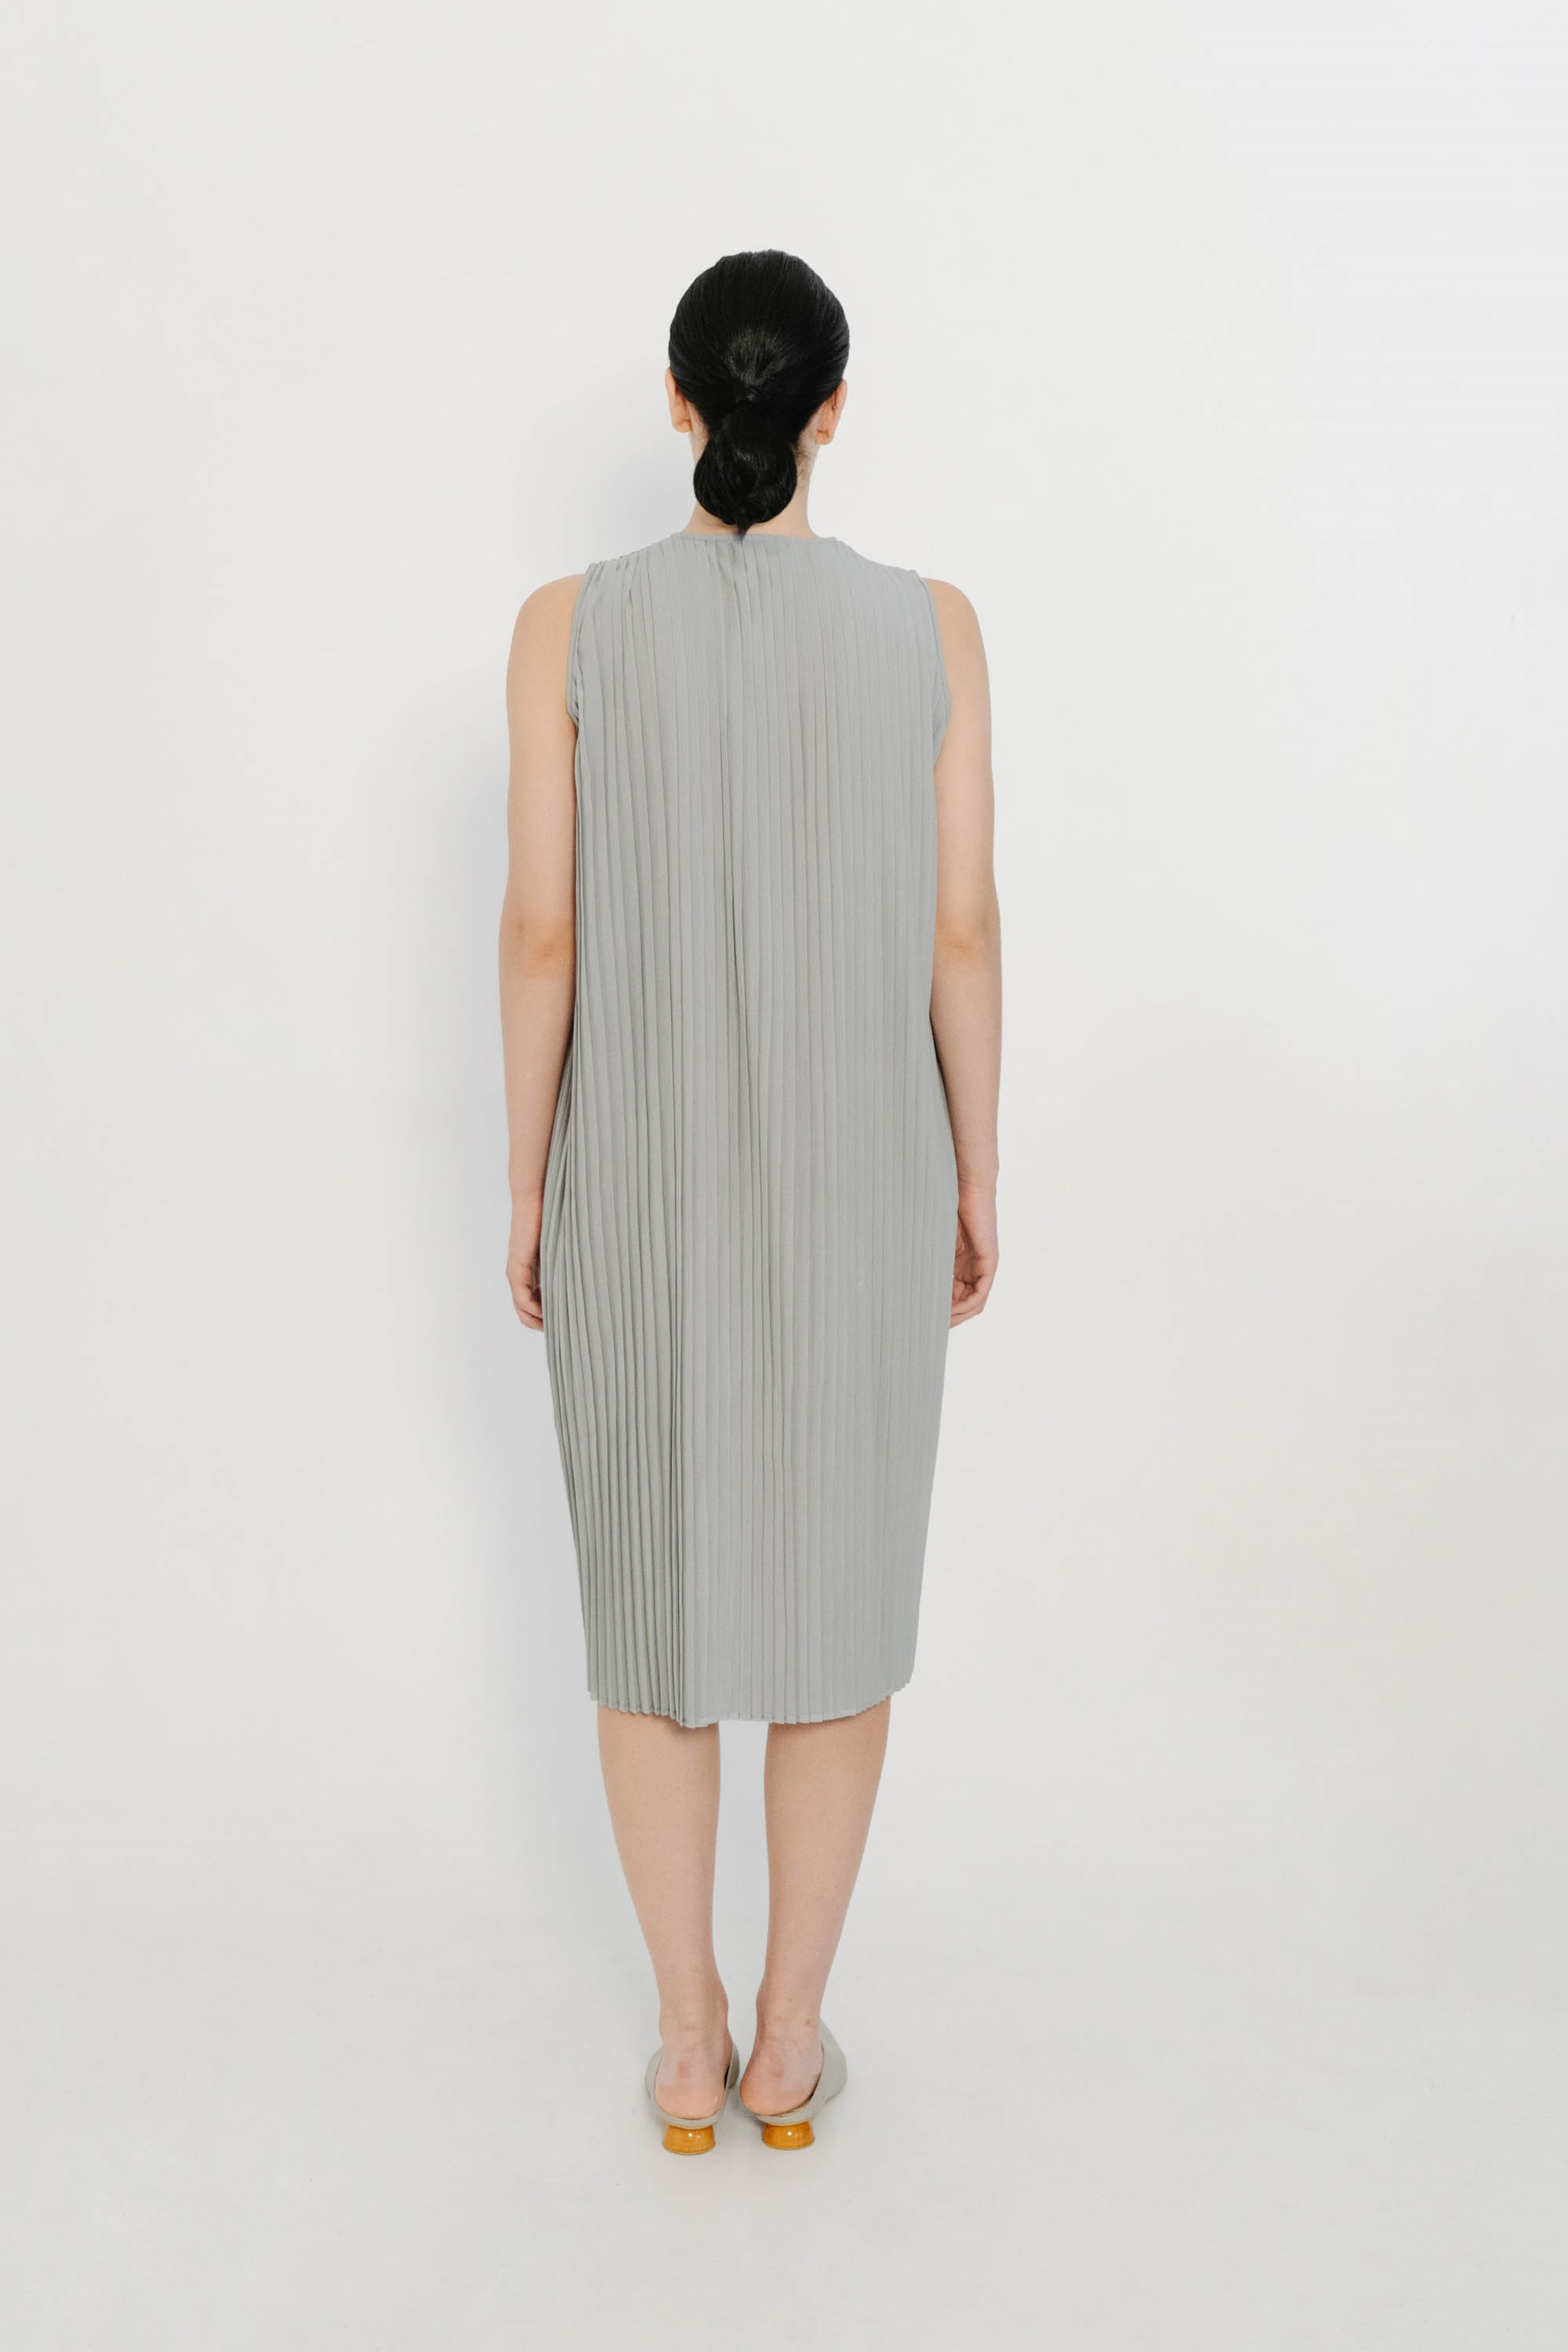 Picture of Thalia Dress in Ice